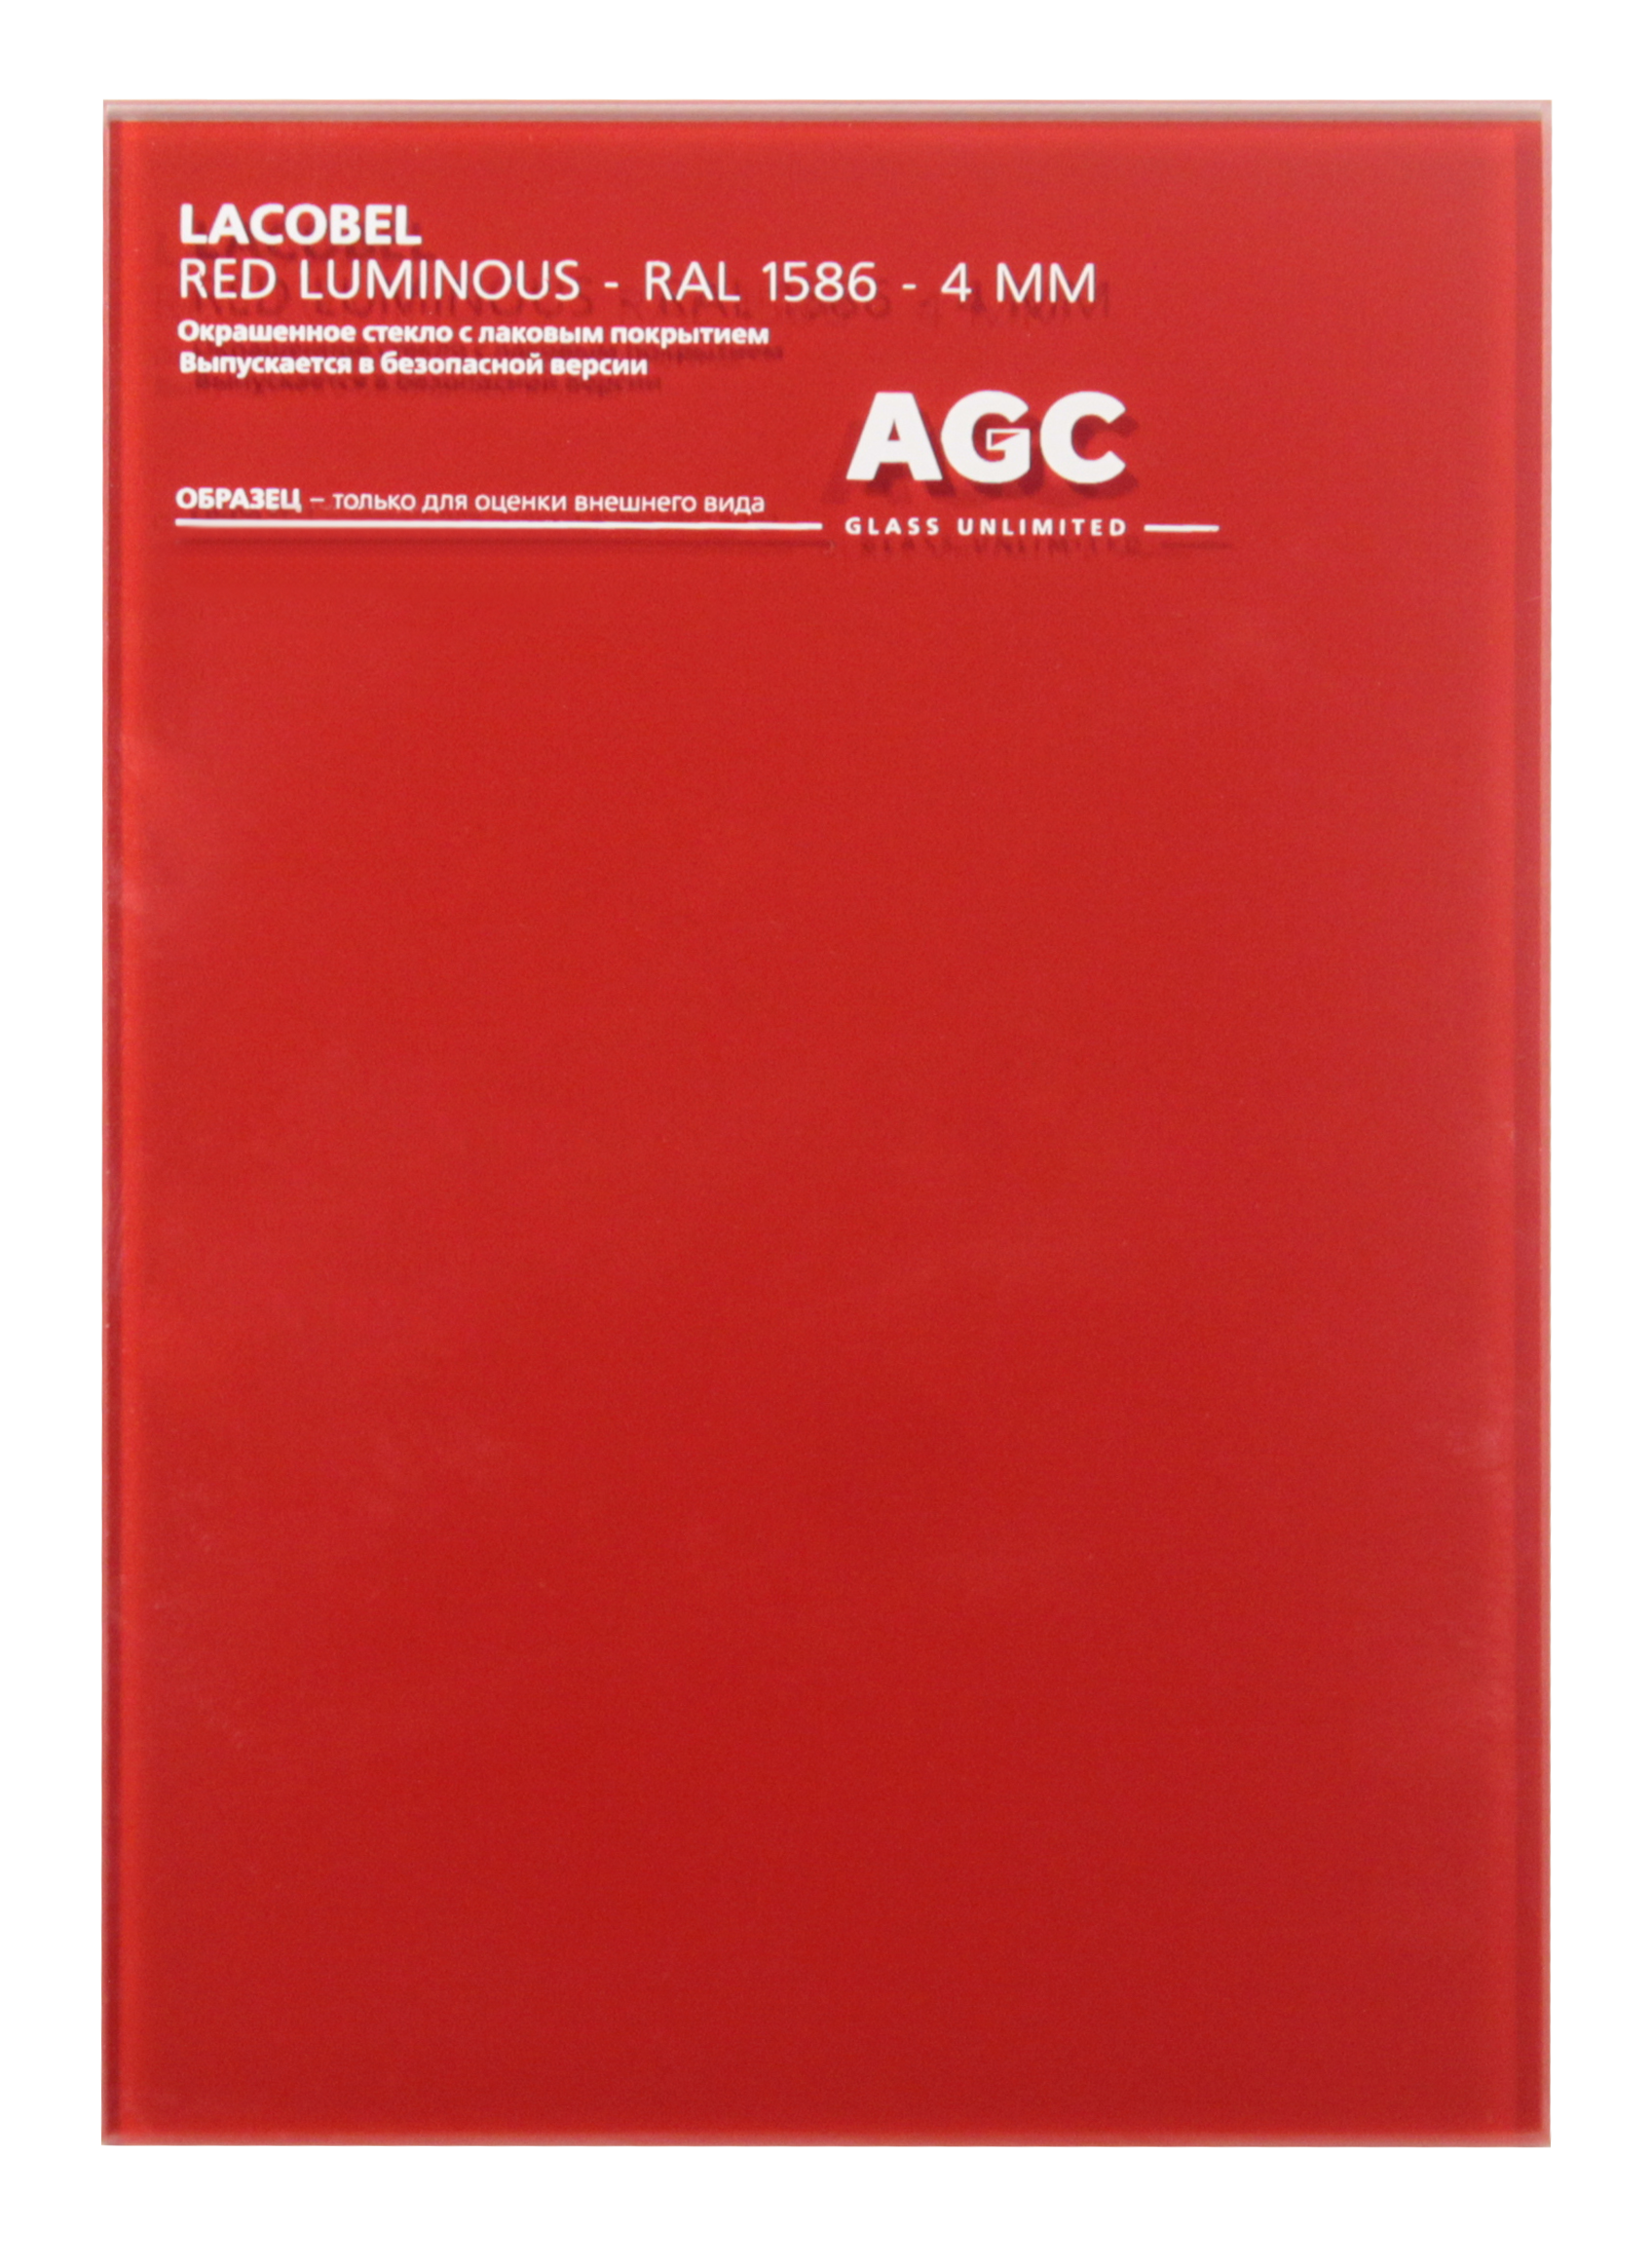 3062647 - AGC cтекло LACOBEL RAL1586 Luminous red 2550*1605*4мм